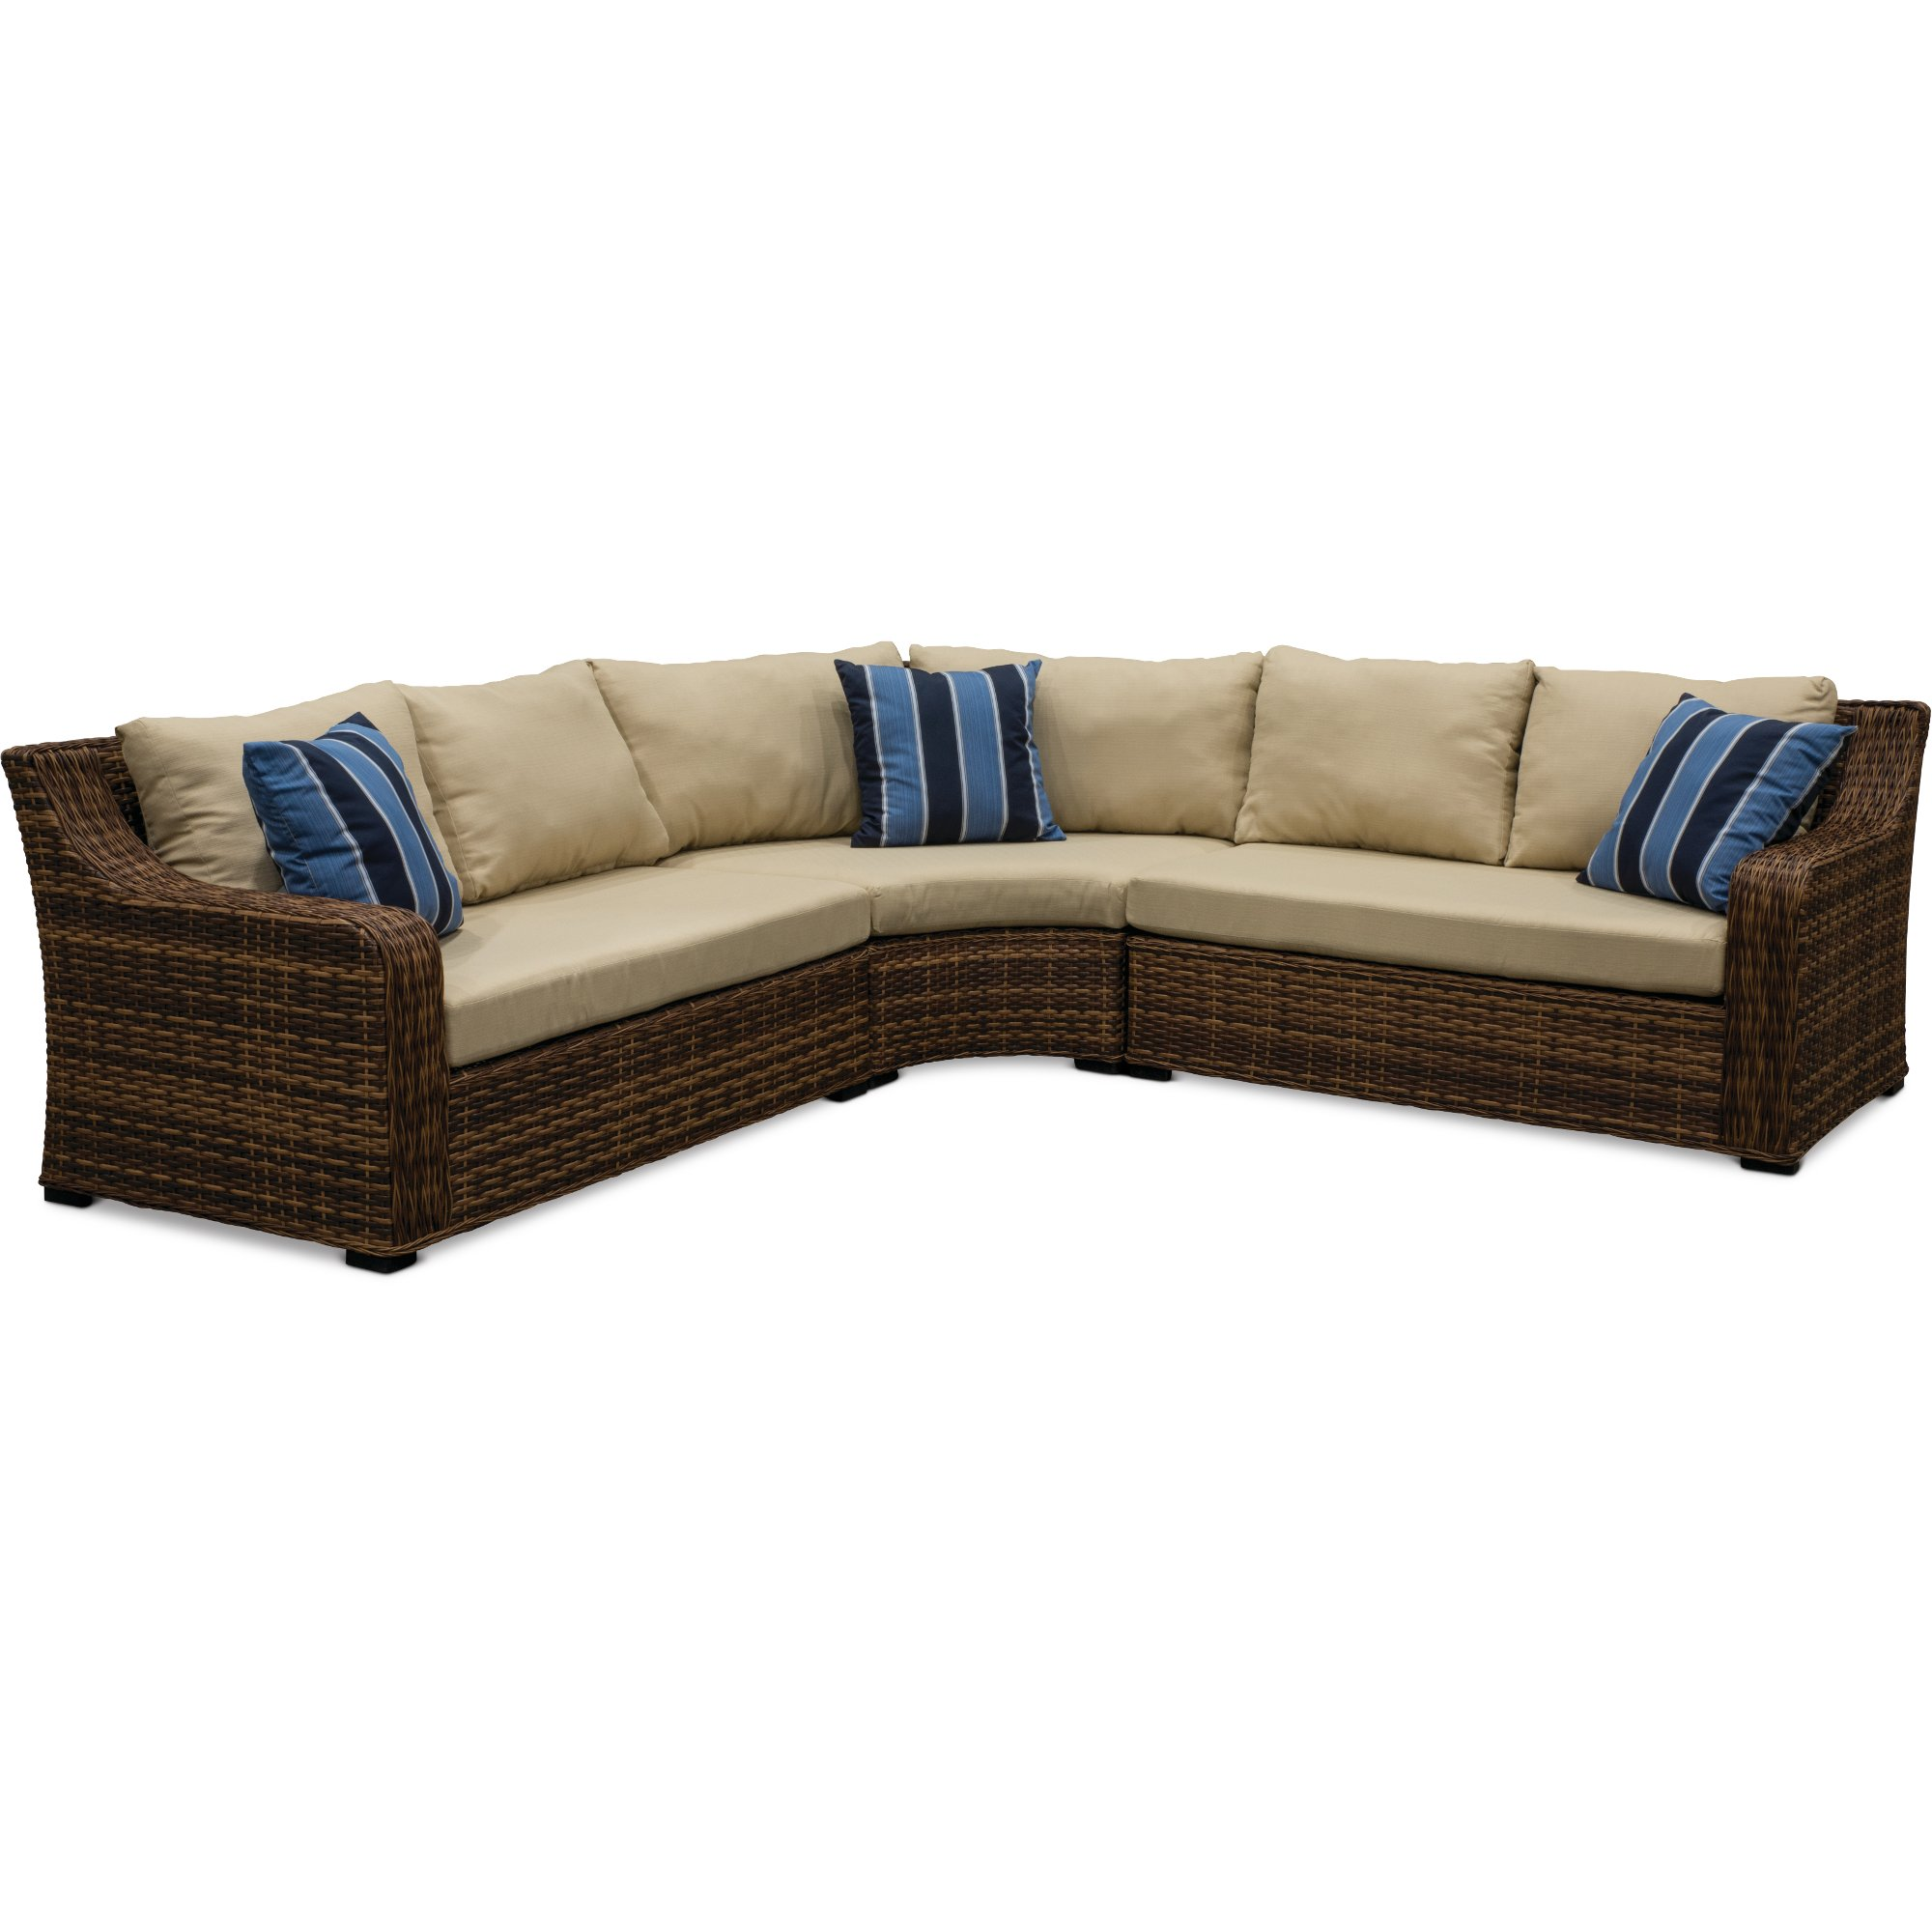 Wicker and Linen Outdoor Patio Sectional Sofa Tortola